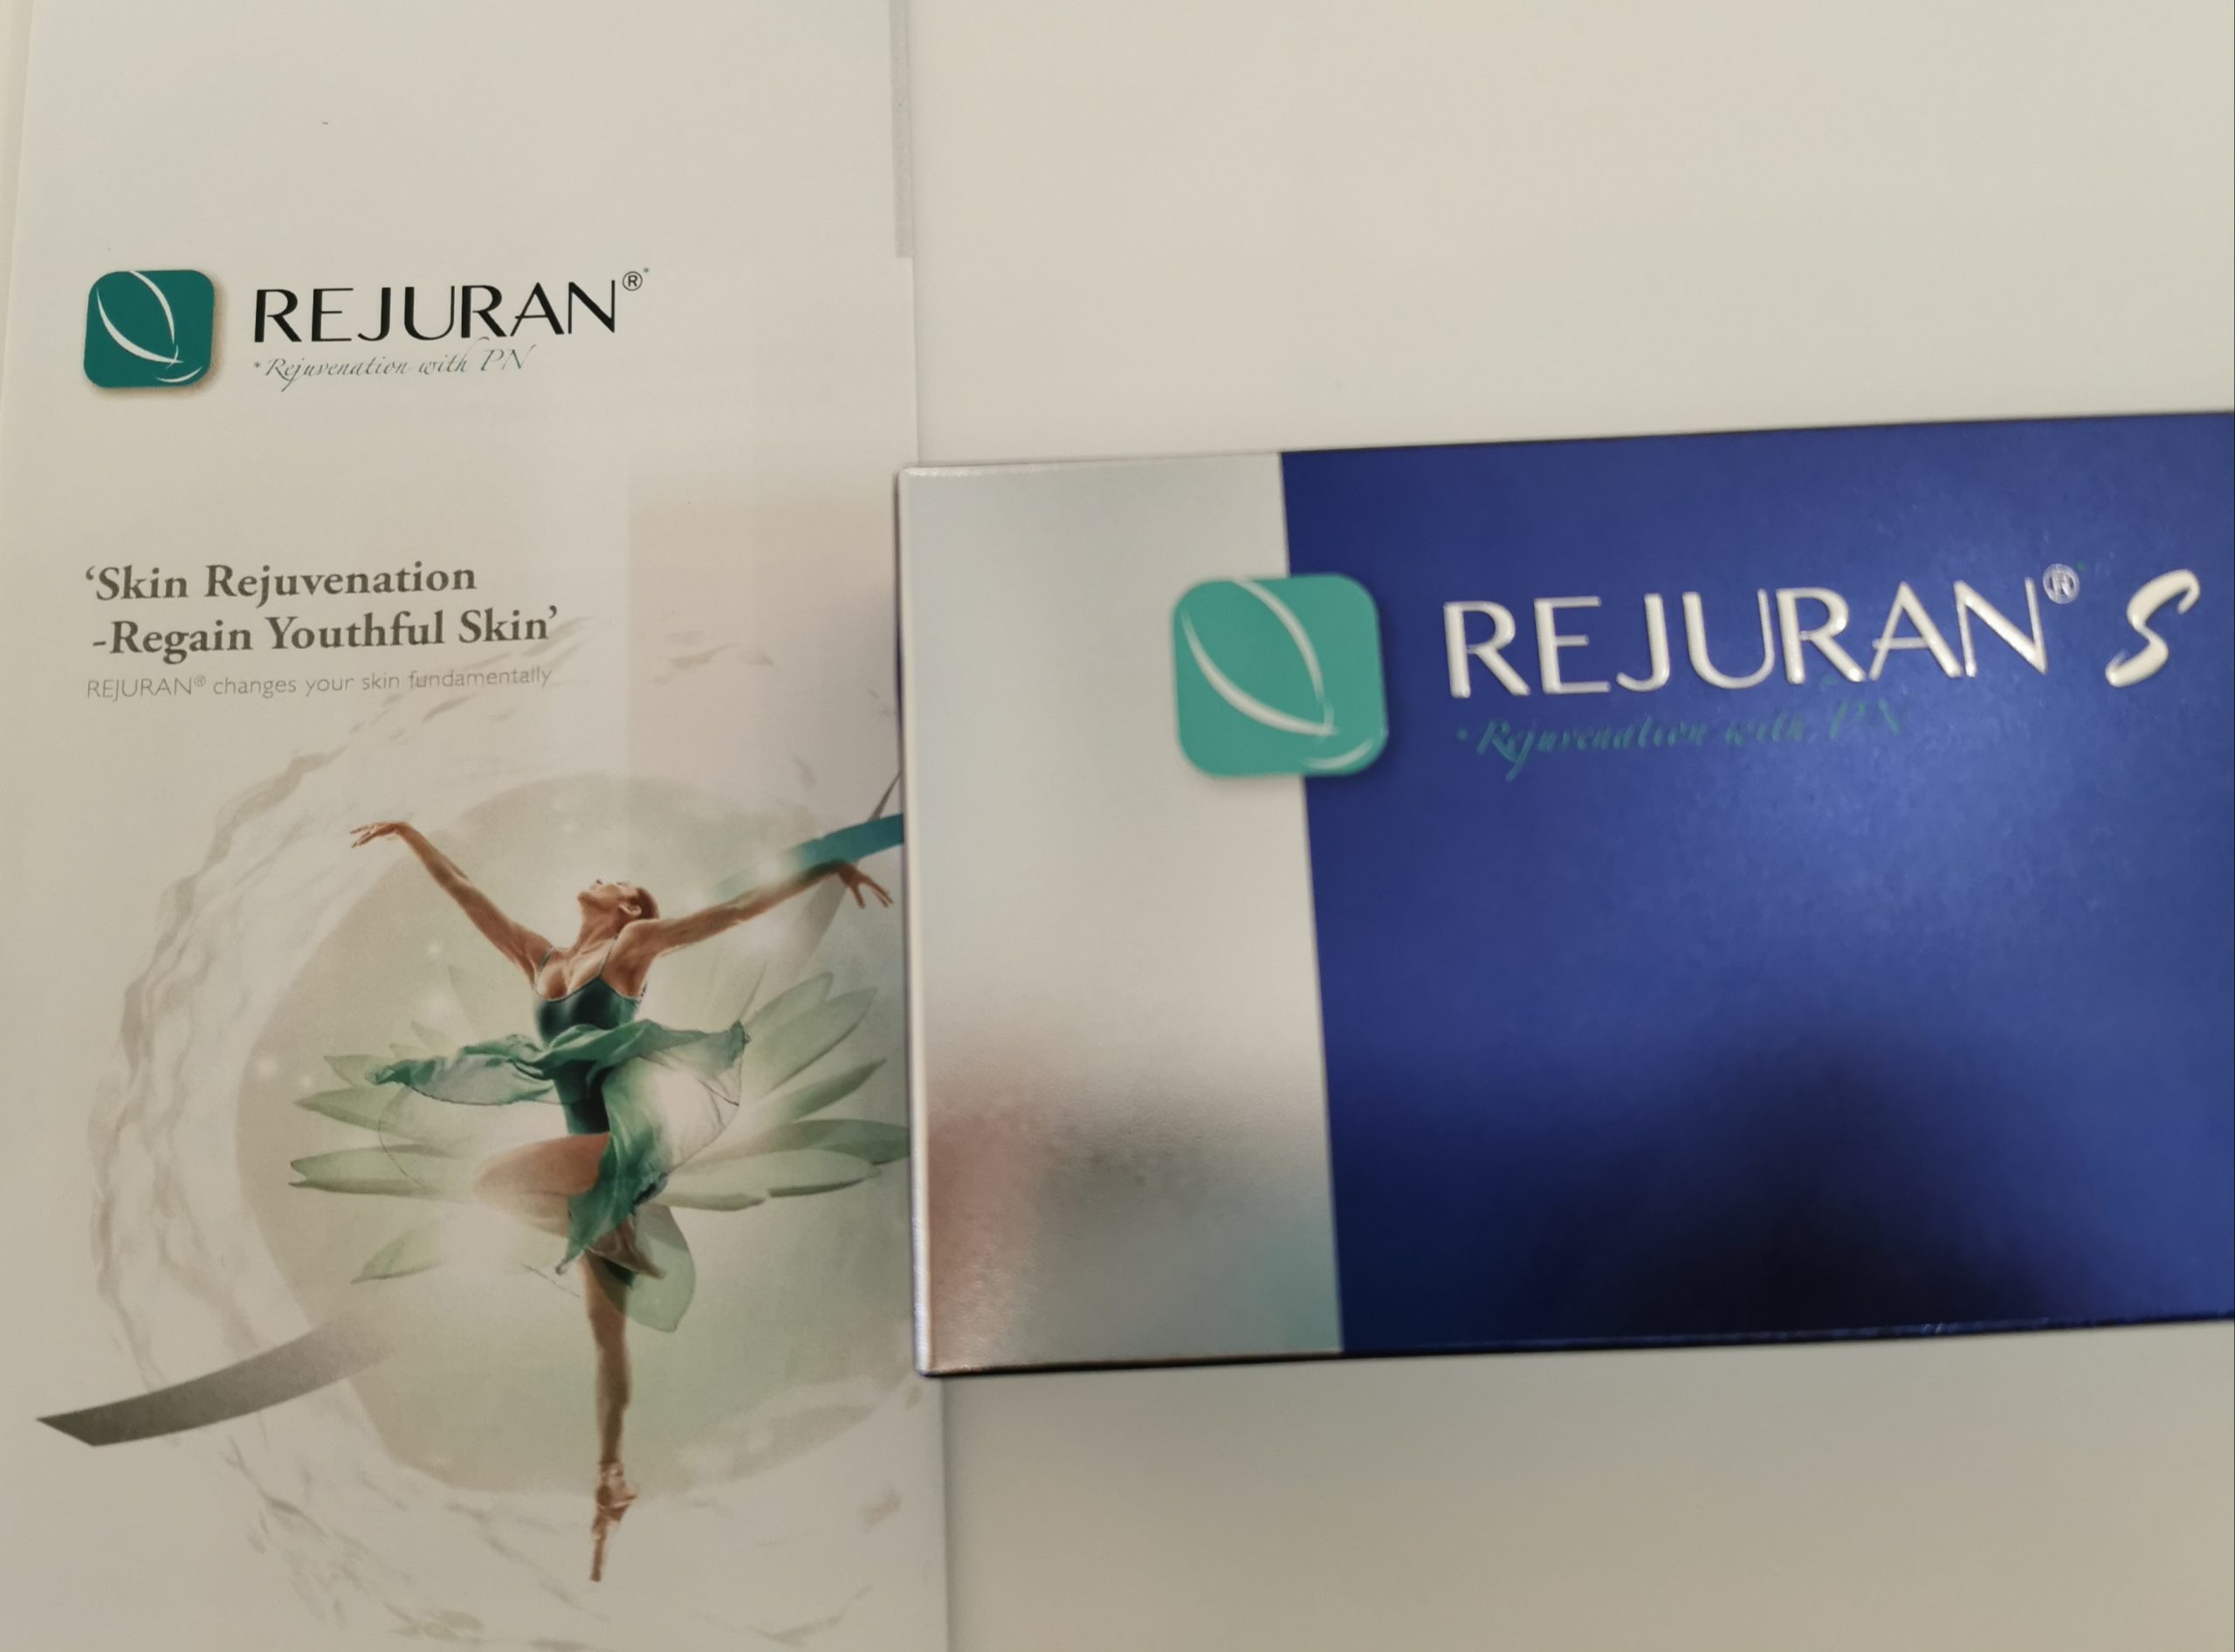 Rejuran S at Dr cindy's medical aesthetics